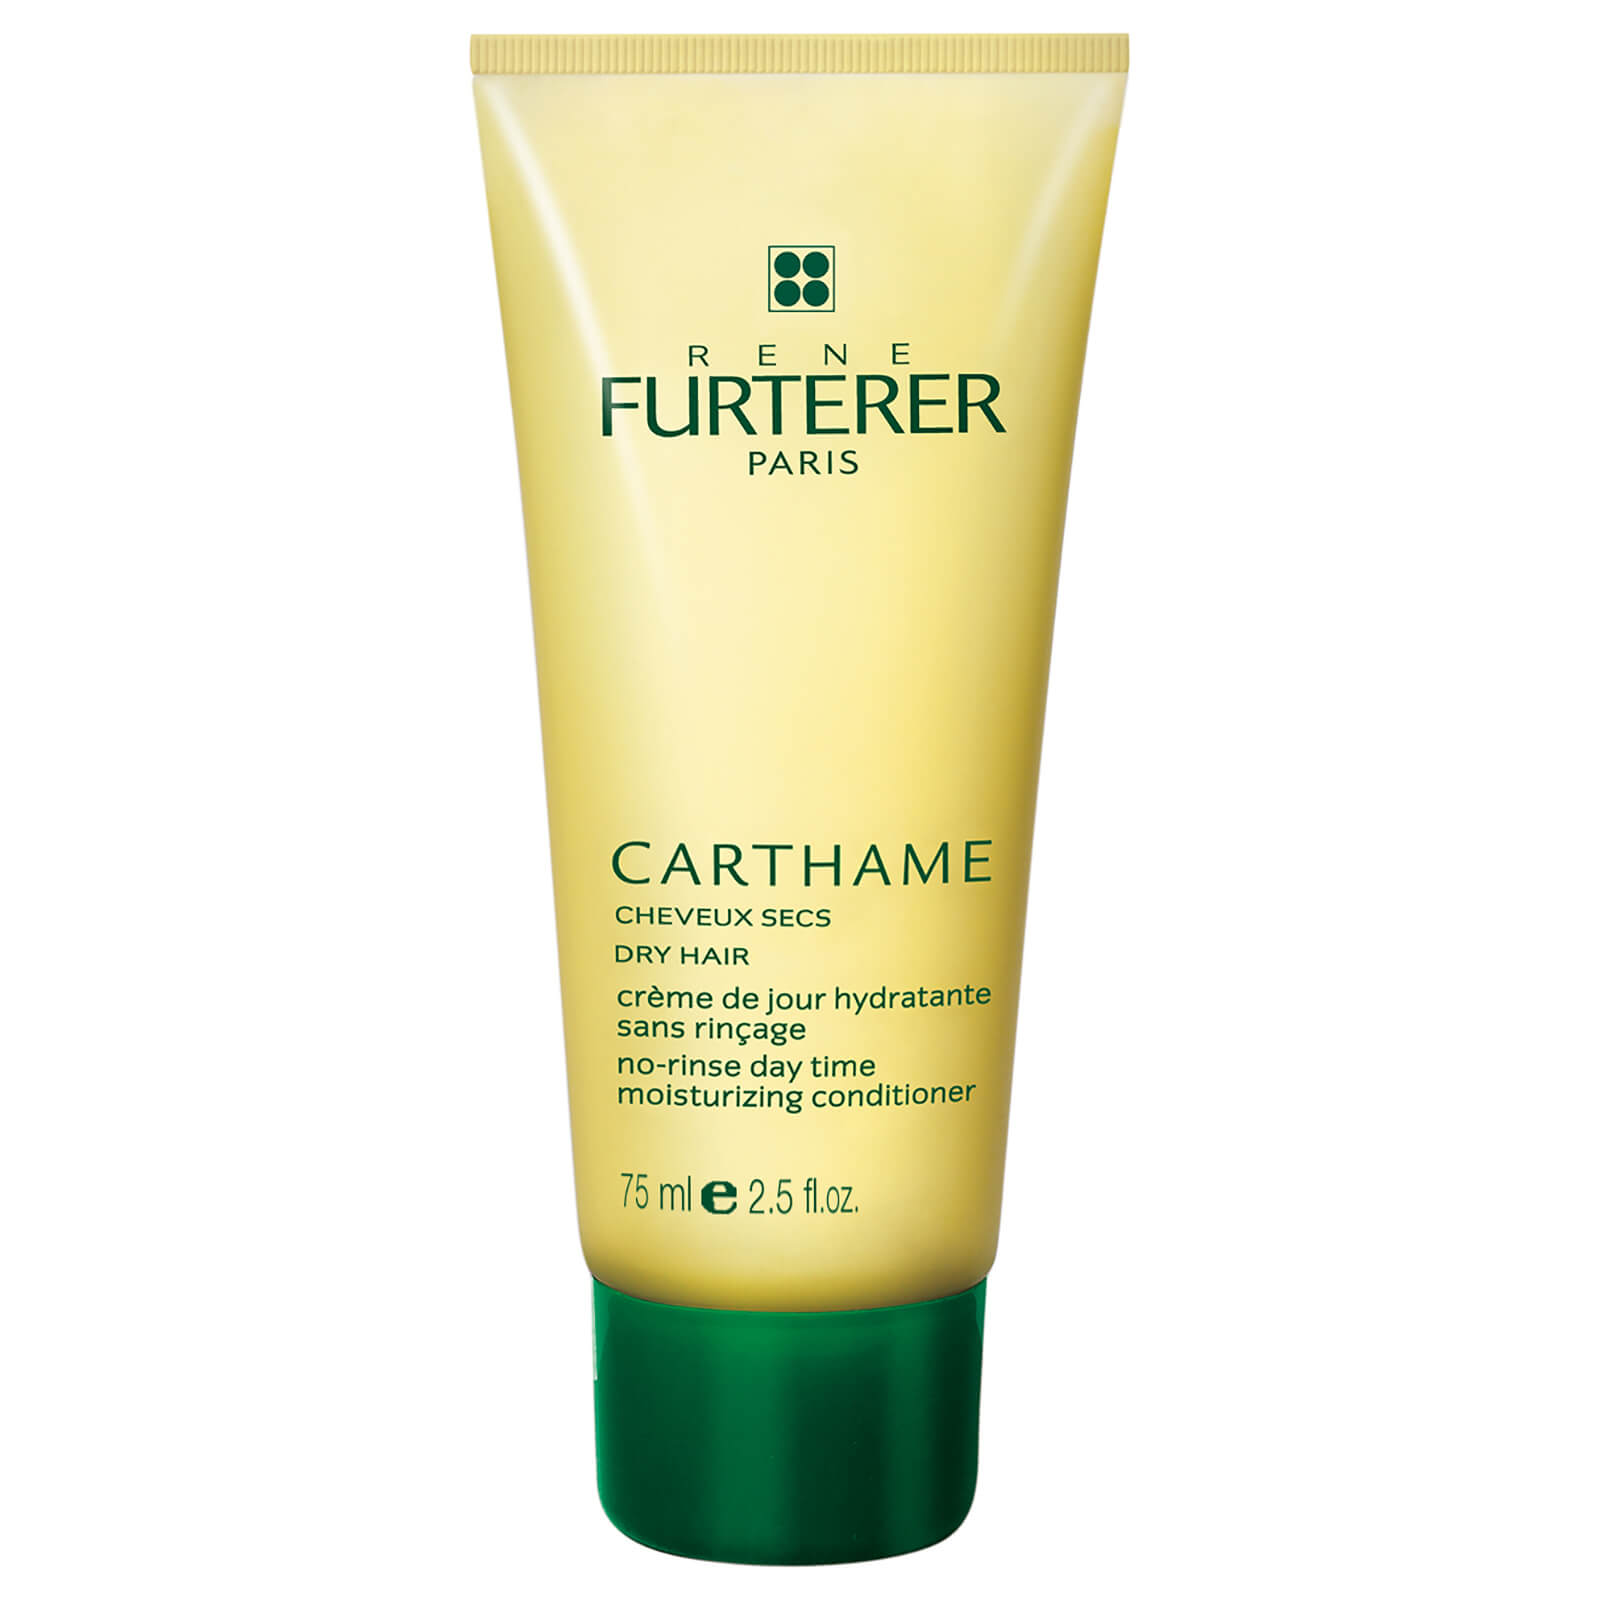 René Furterer Carthame Day Time Moisturizing Leave In Conditioner 2.5 fl.oz